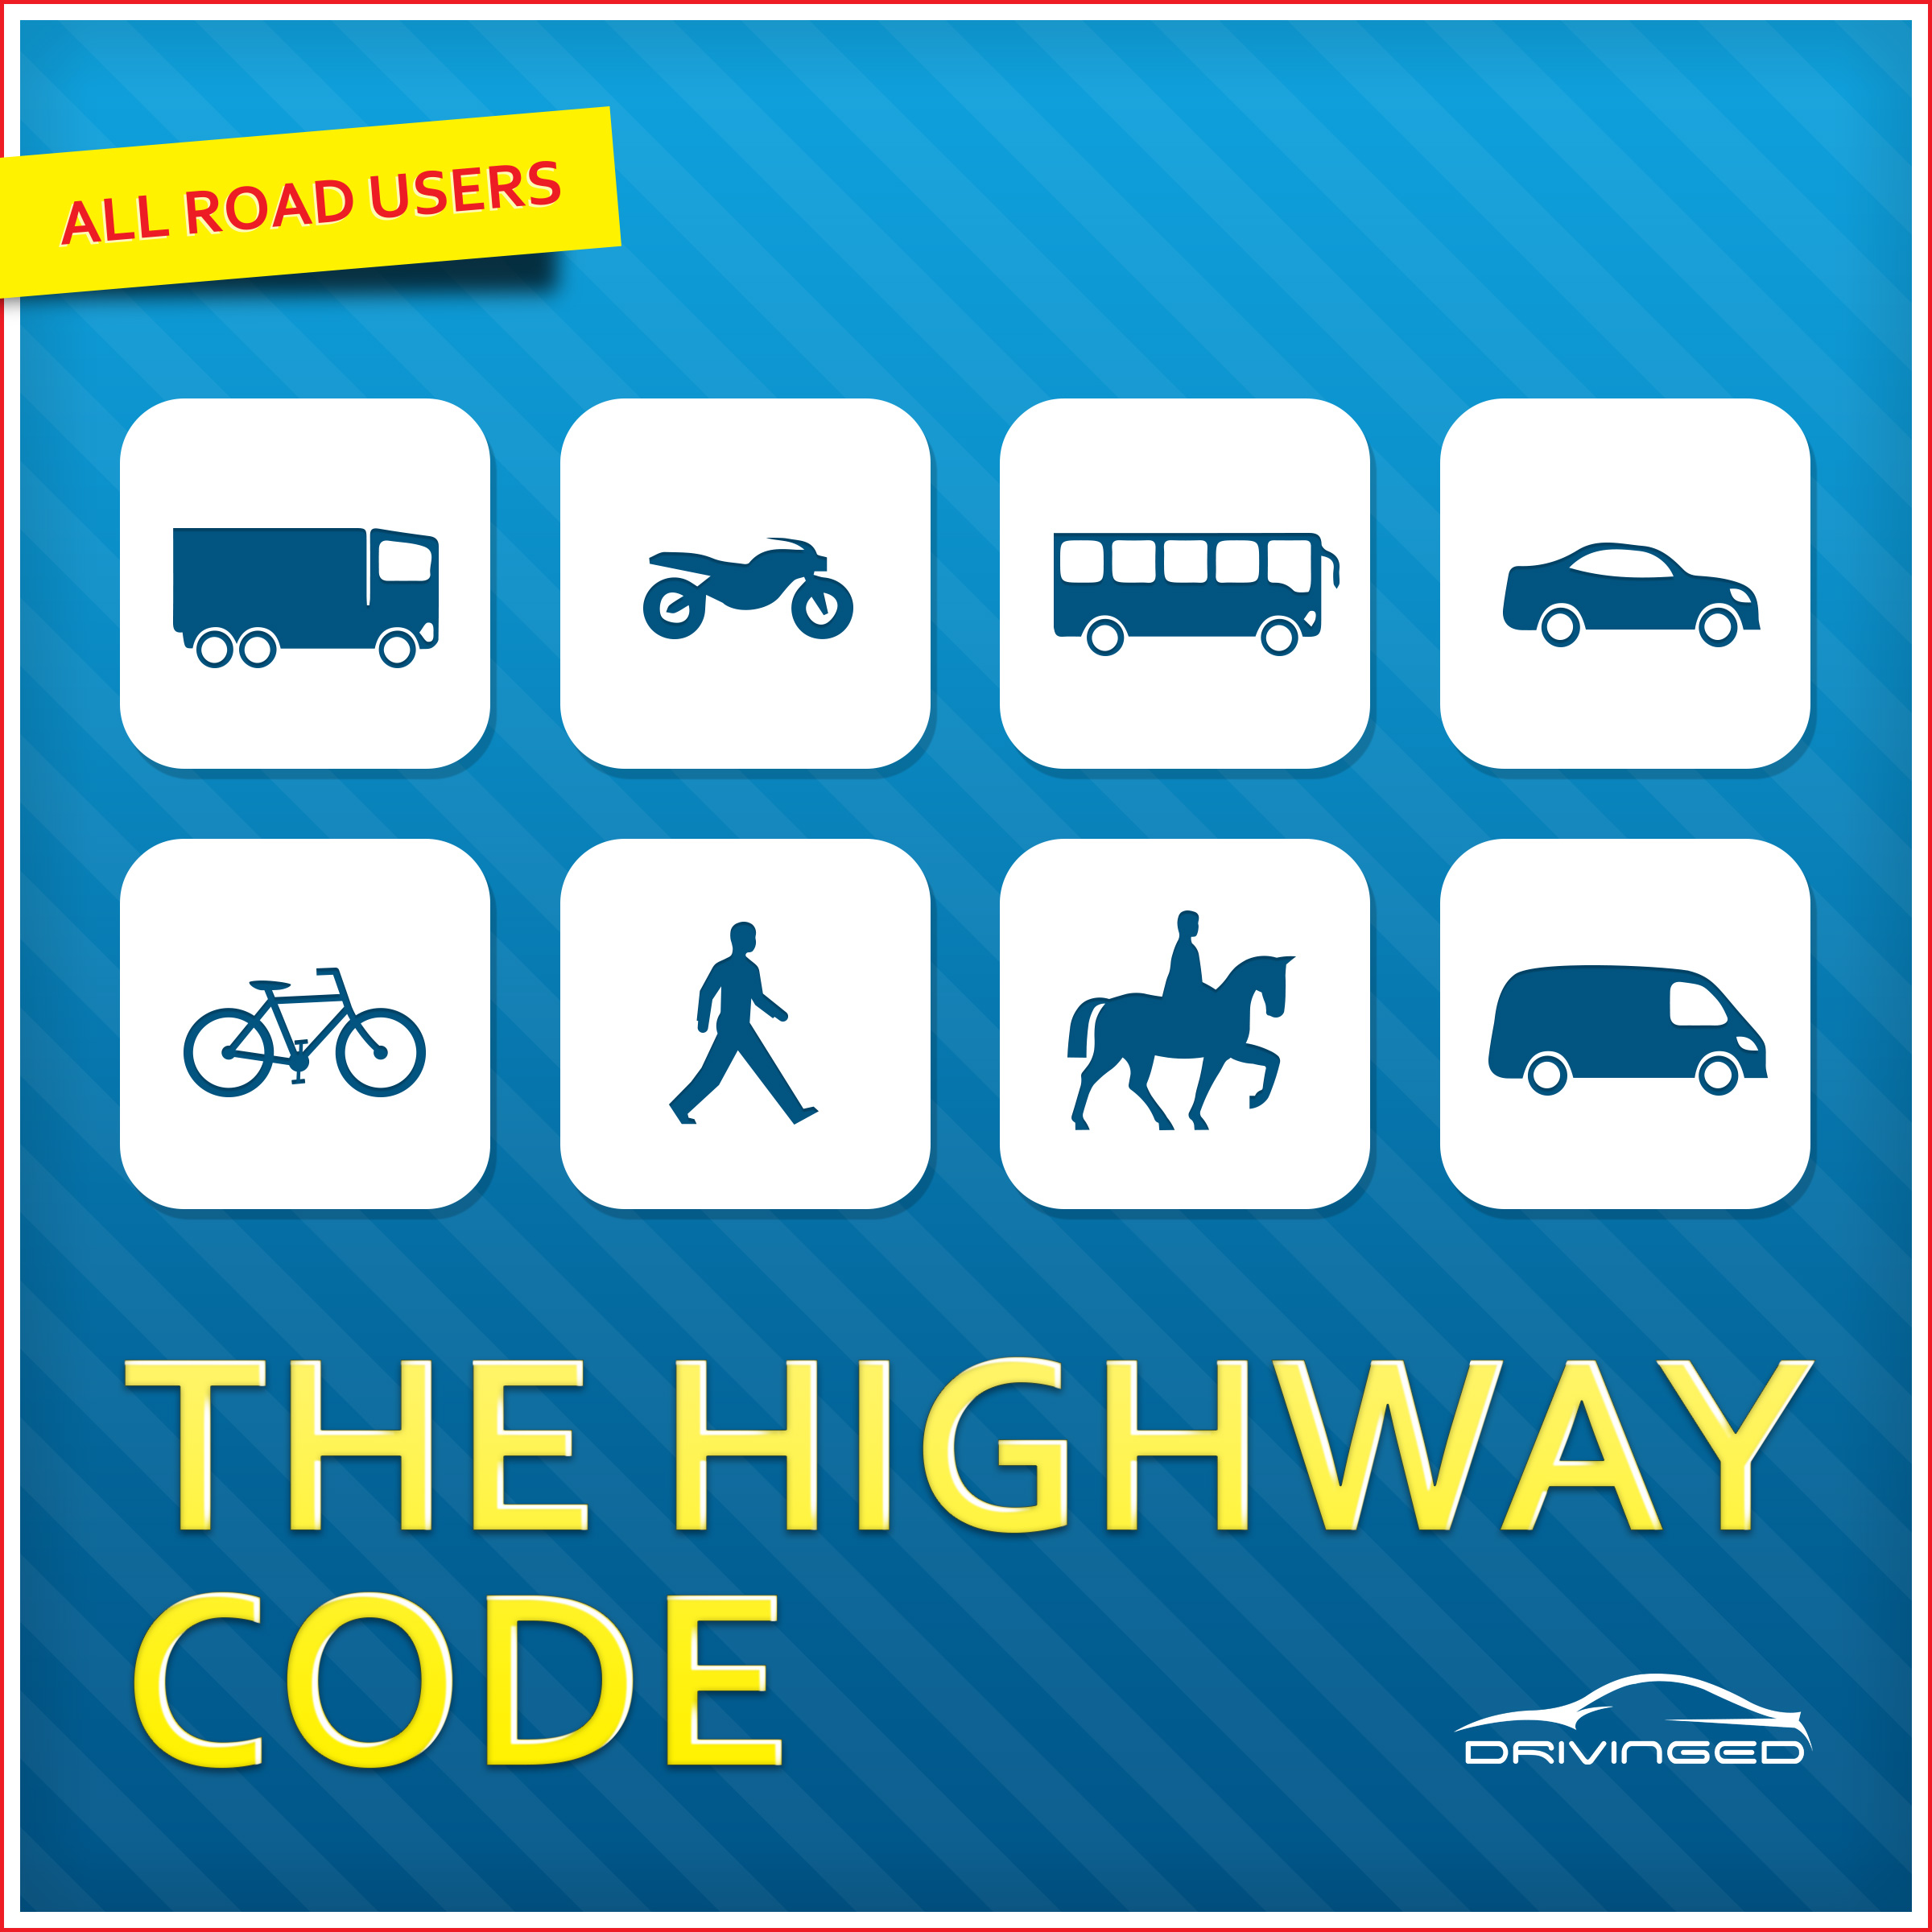 The Highway Code - Driving Theory and Hazard Perception ...